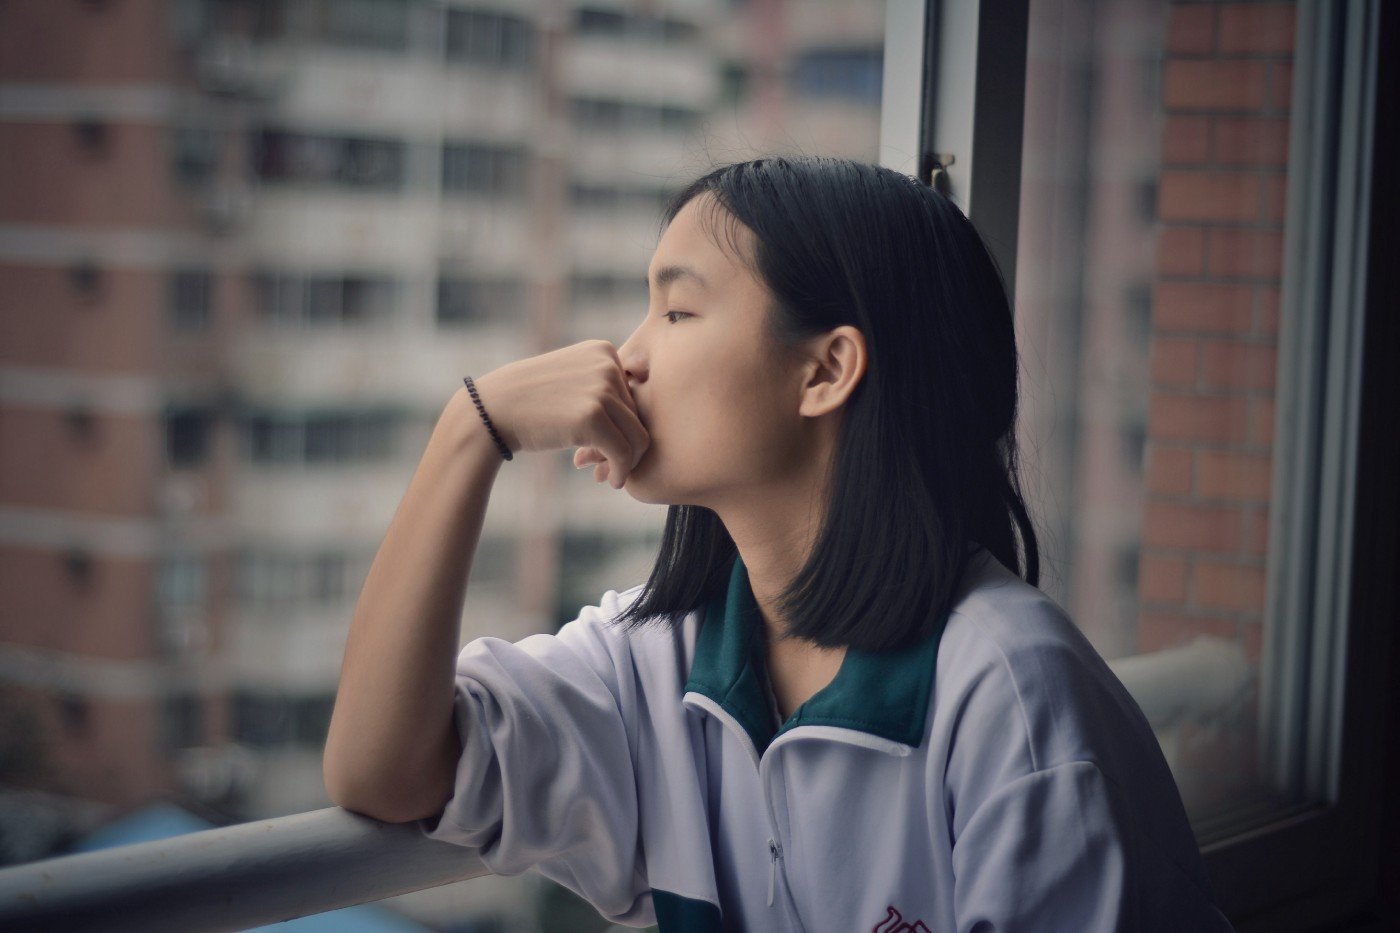 Young girl looking out of a window dreaming